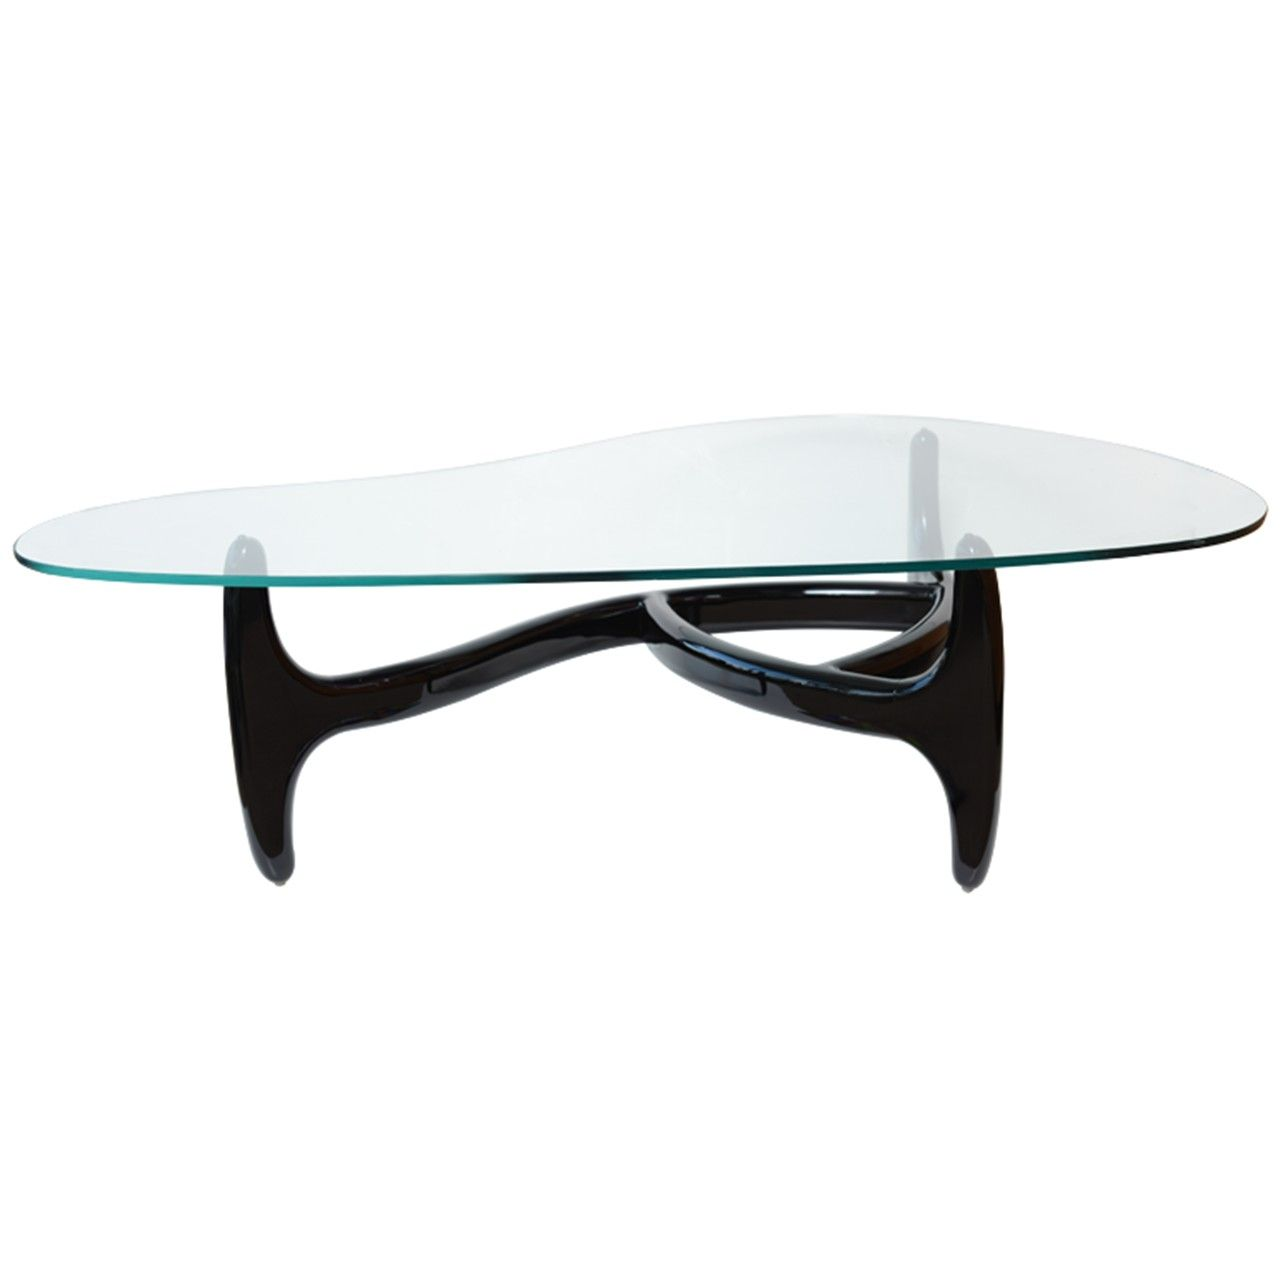 Designer Architectural Kidney Shaped Coffee Table 1stdibs Com Coffee Table Glass Top Coffee Table Table [ 1280 x 1280 Pixel ]